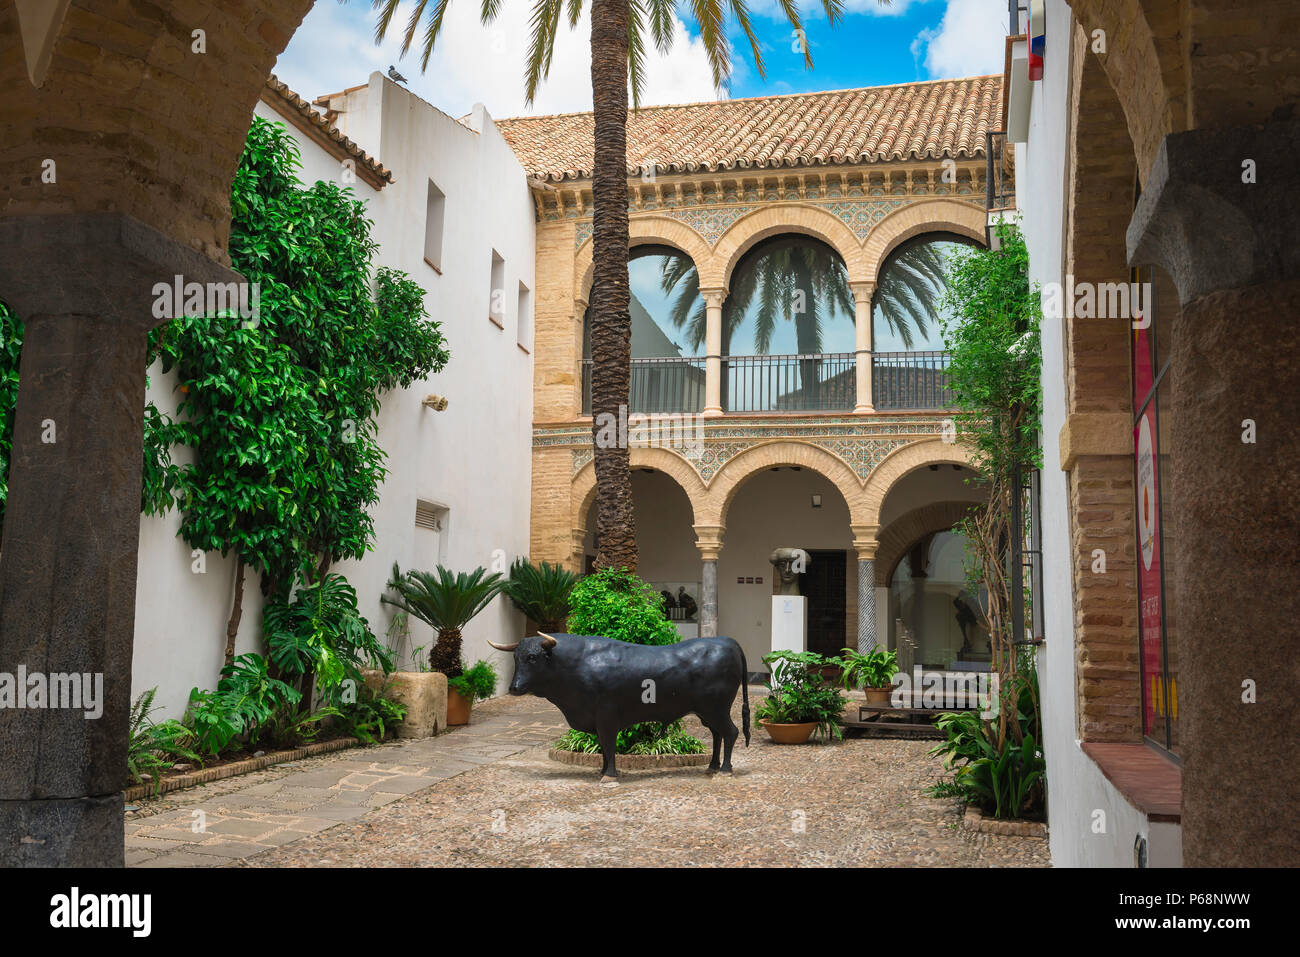 Cordoba Taurino, view of the typically Andalucian patio courtyard of the Bullfighting Museum (Museo Taurino) in Cordoba (Cordova), Andalucia, Spain. - Stock Image